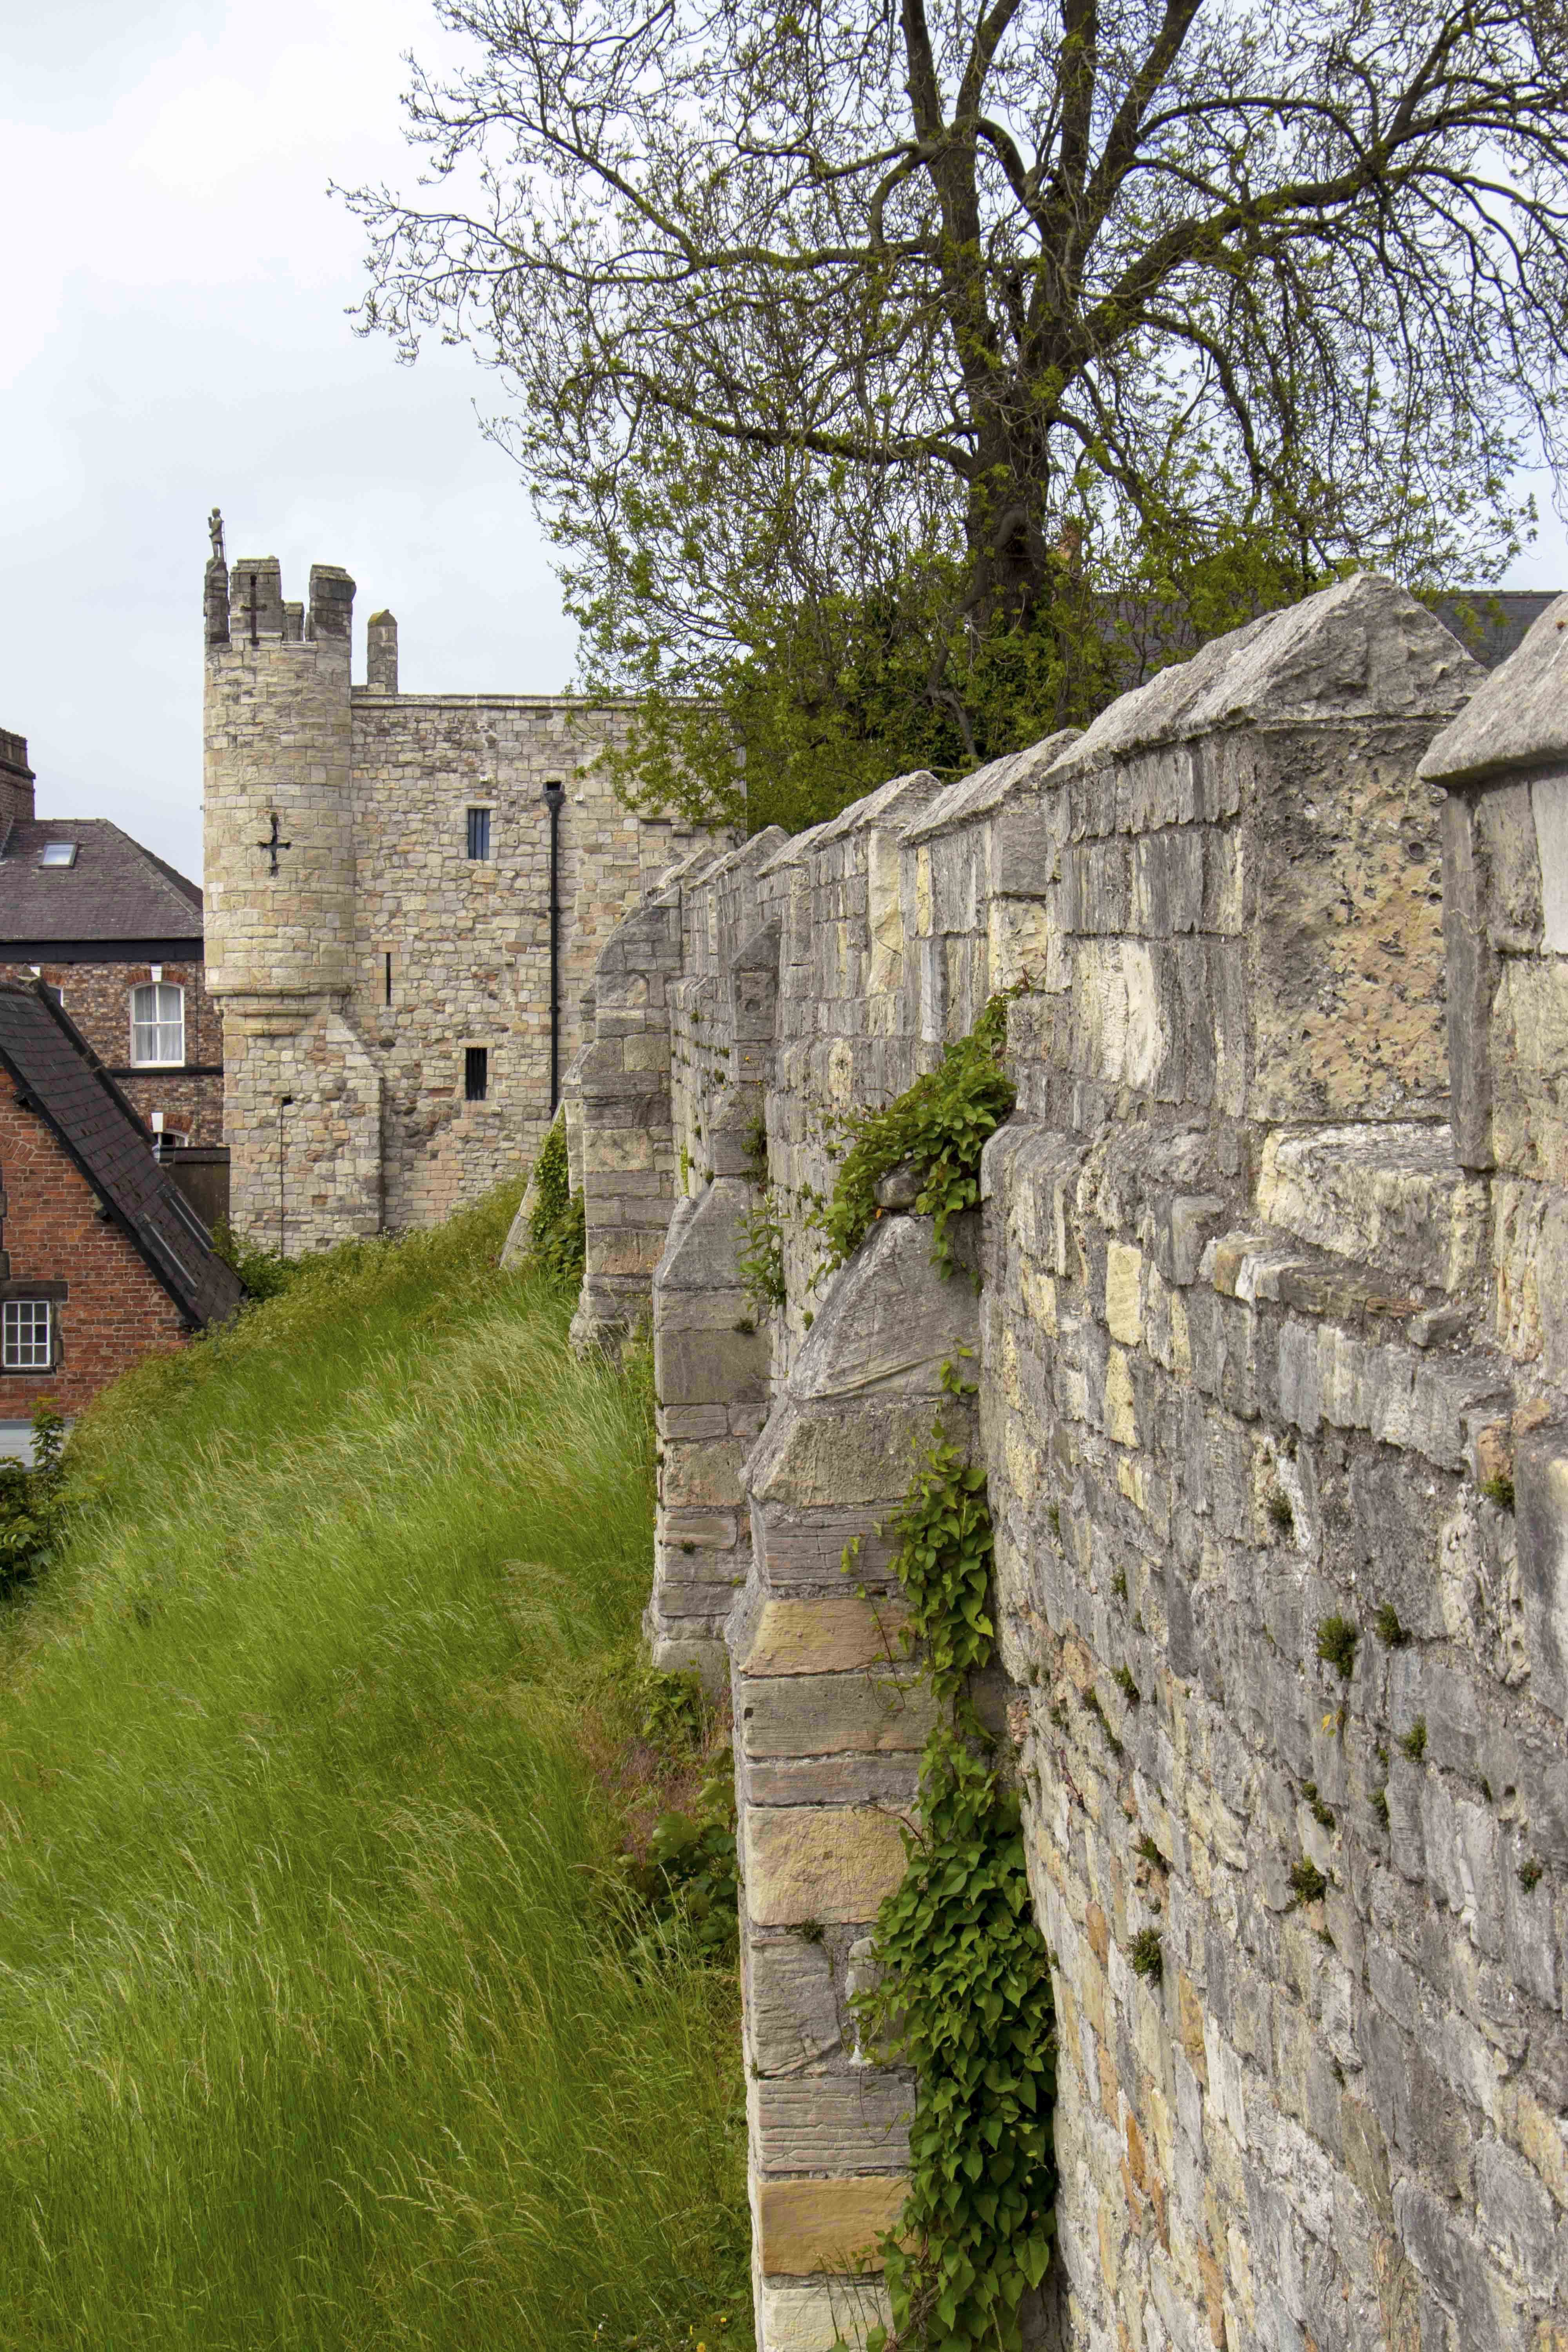 York city walls and Micklegate bar